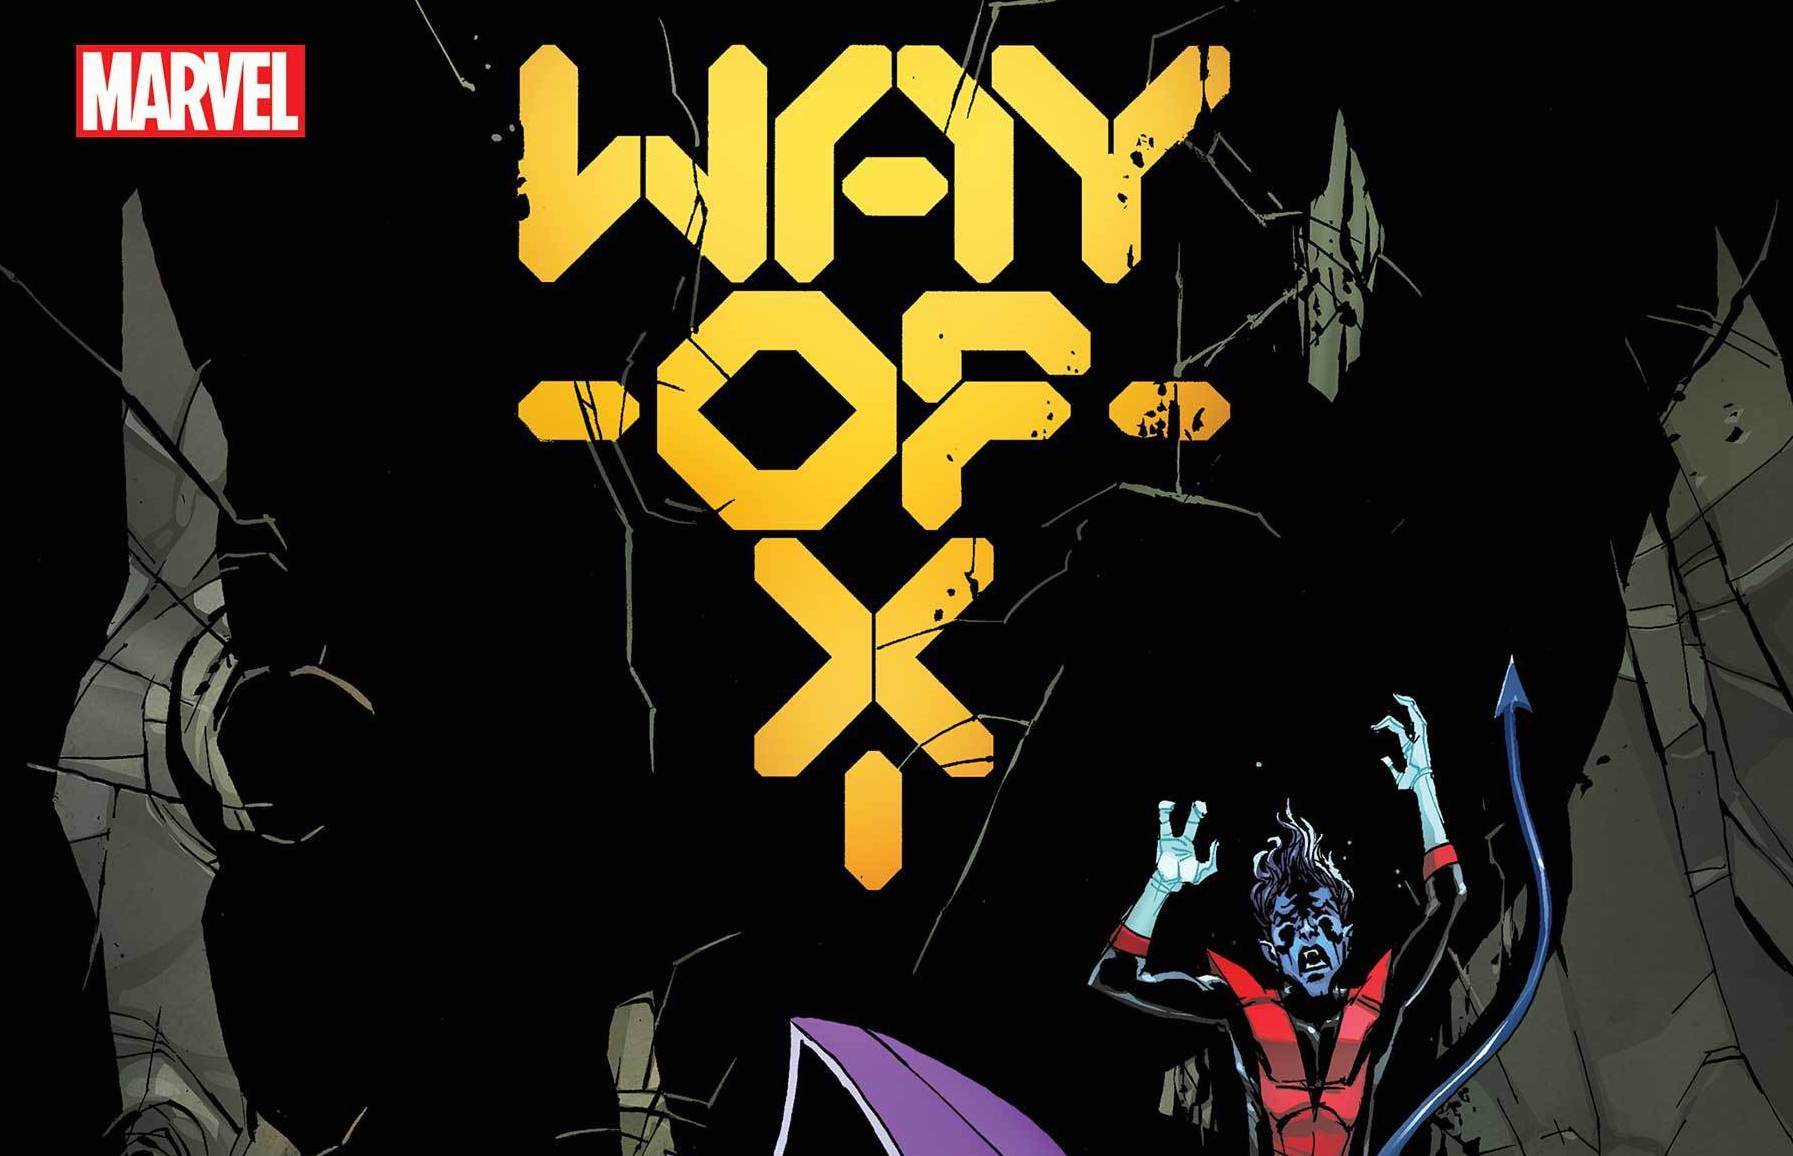 EXCLUSIVE Marvel First Look: Way of X #5